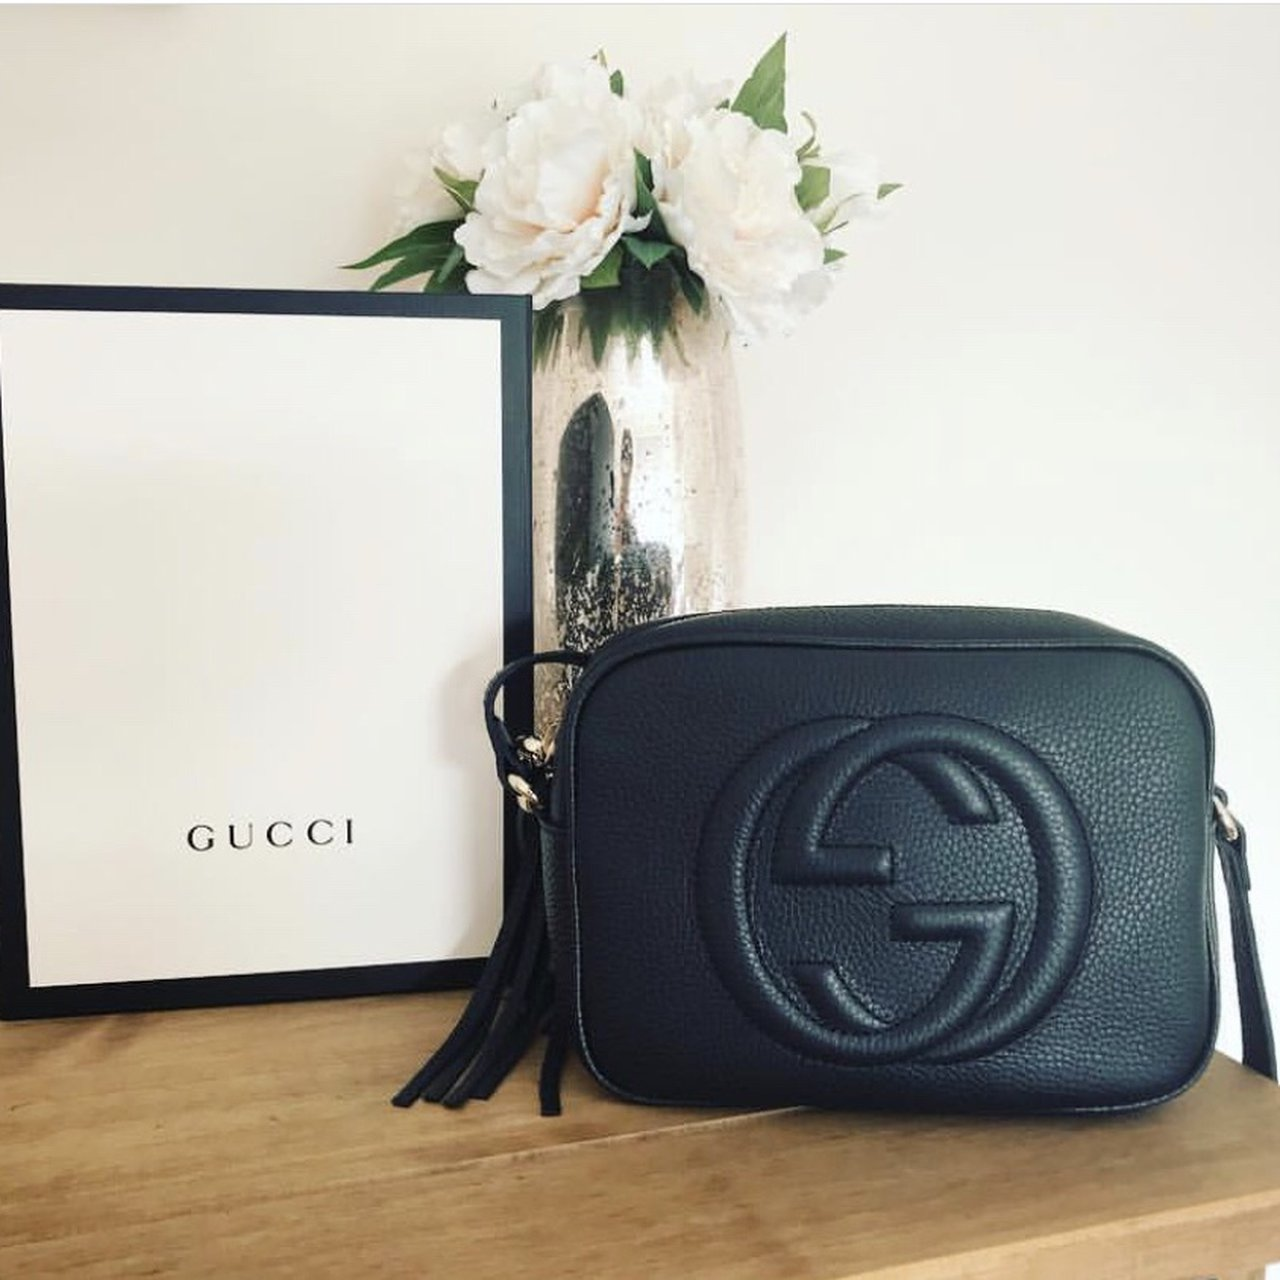 44b6851a3078cb Back on sale due to time wasting buyer*** Gucci Soho and - Depop